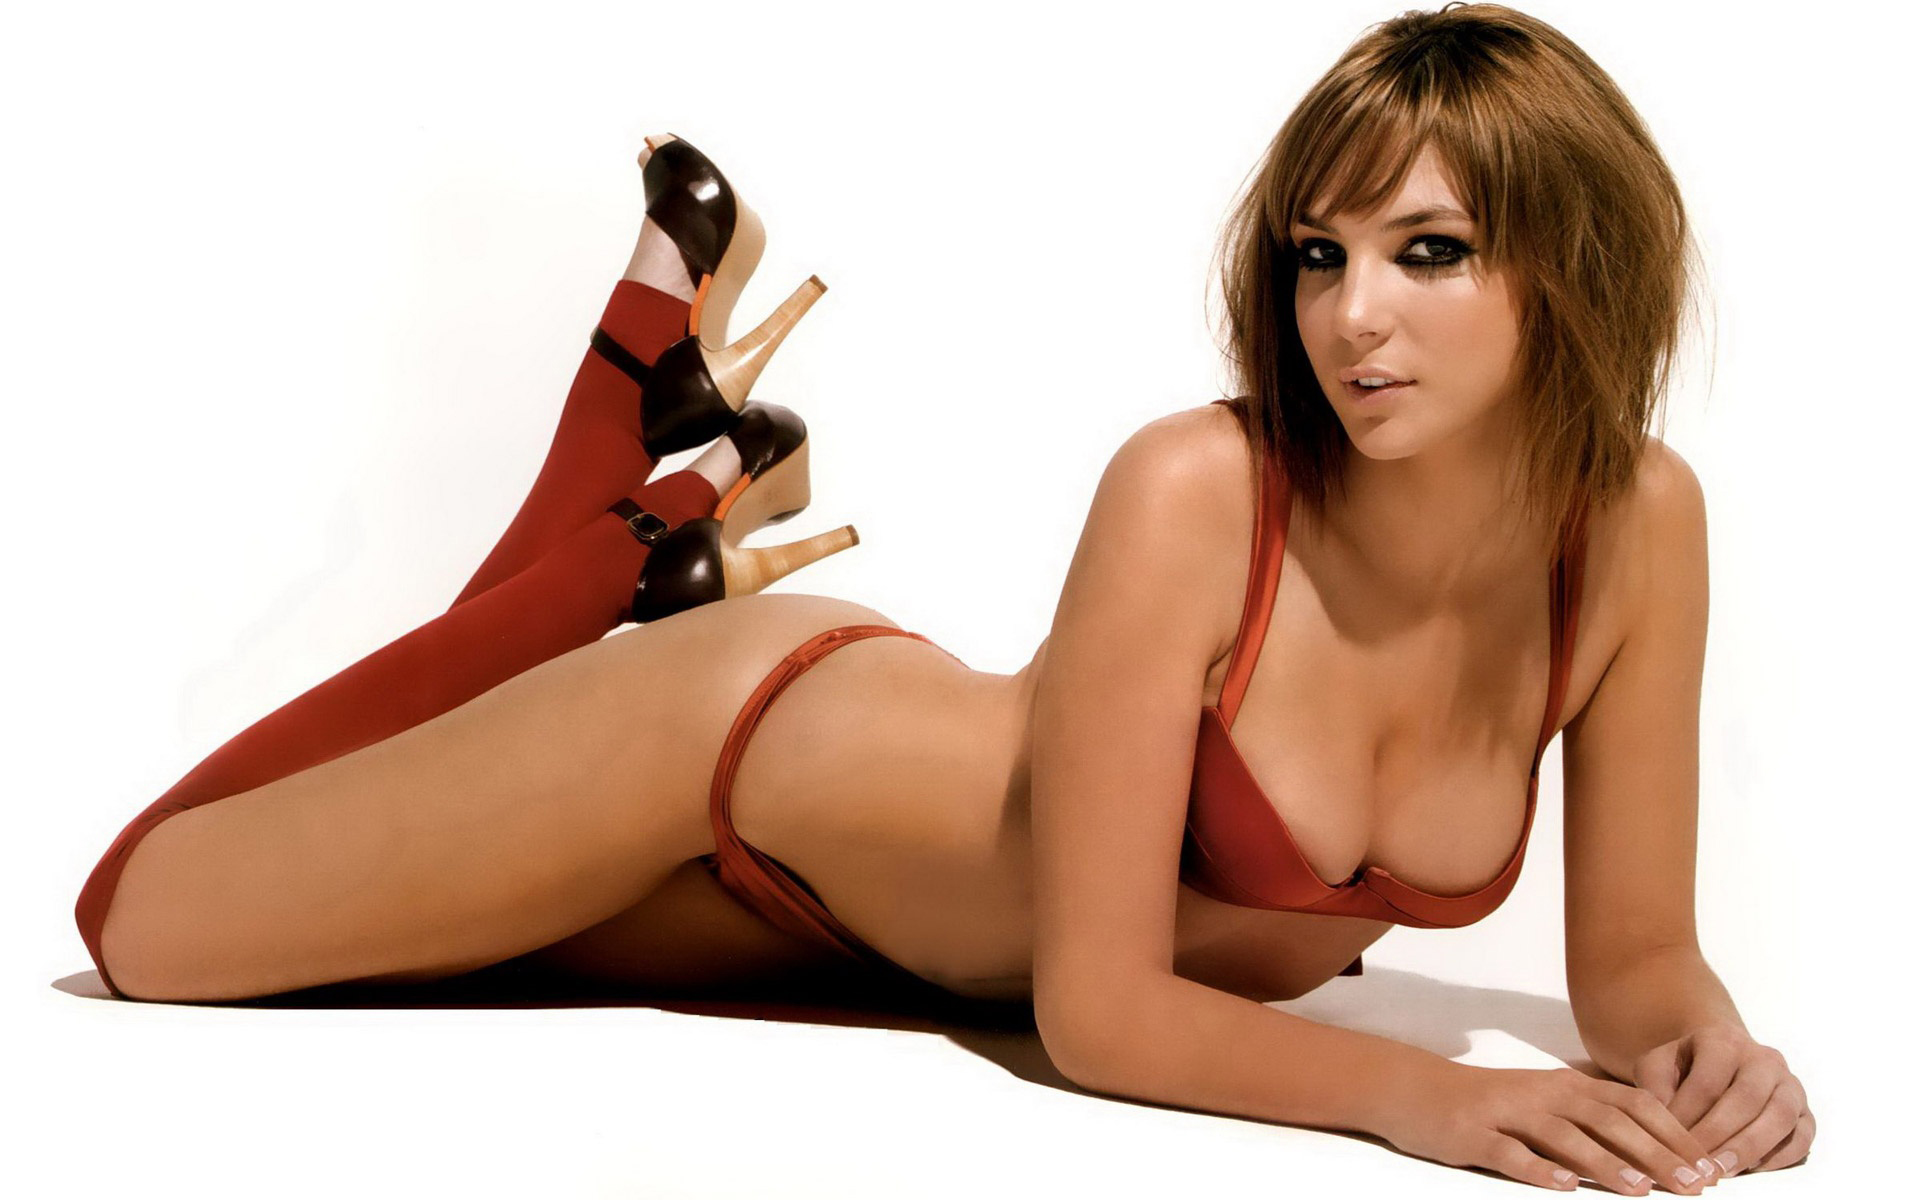 Paloma Bloyd Red Lingerie